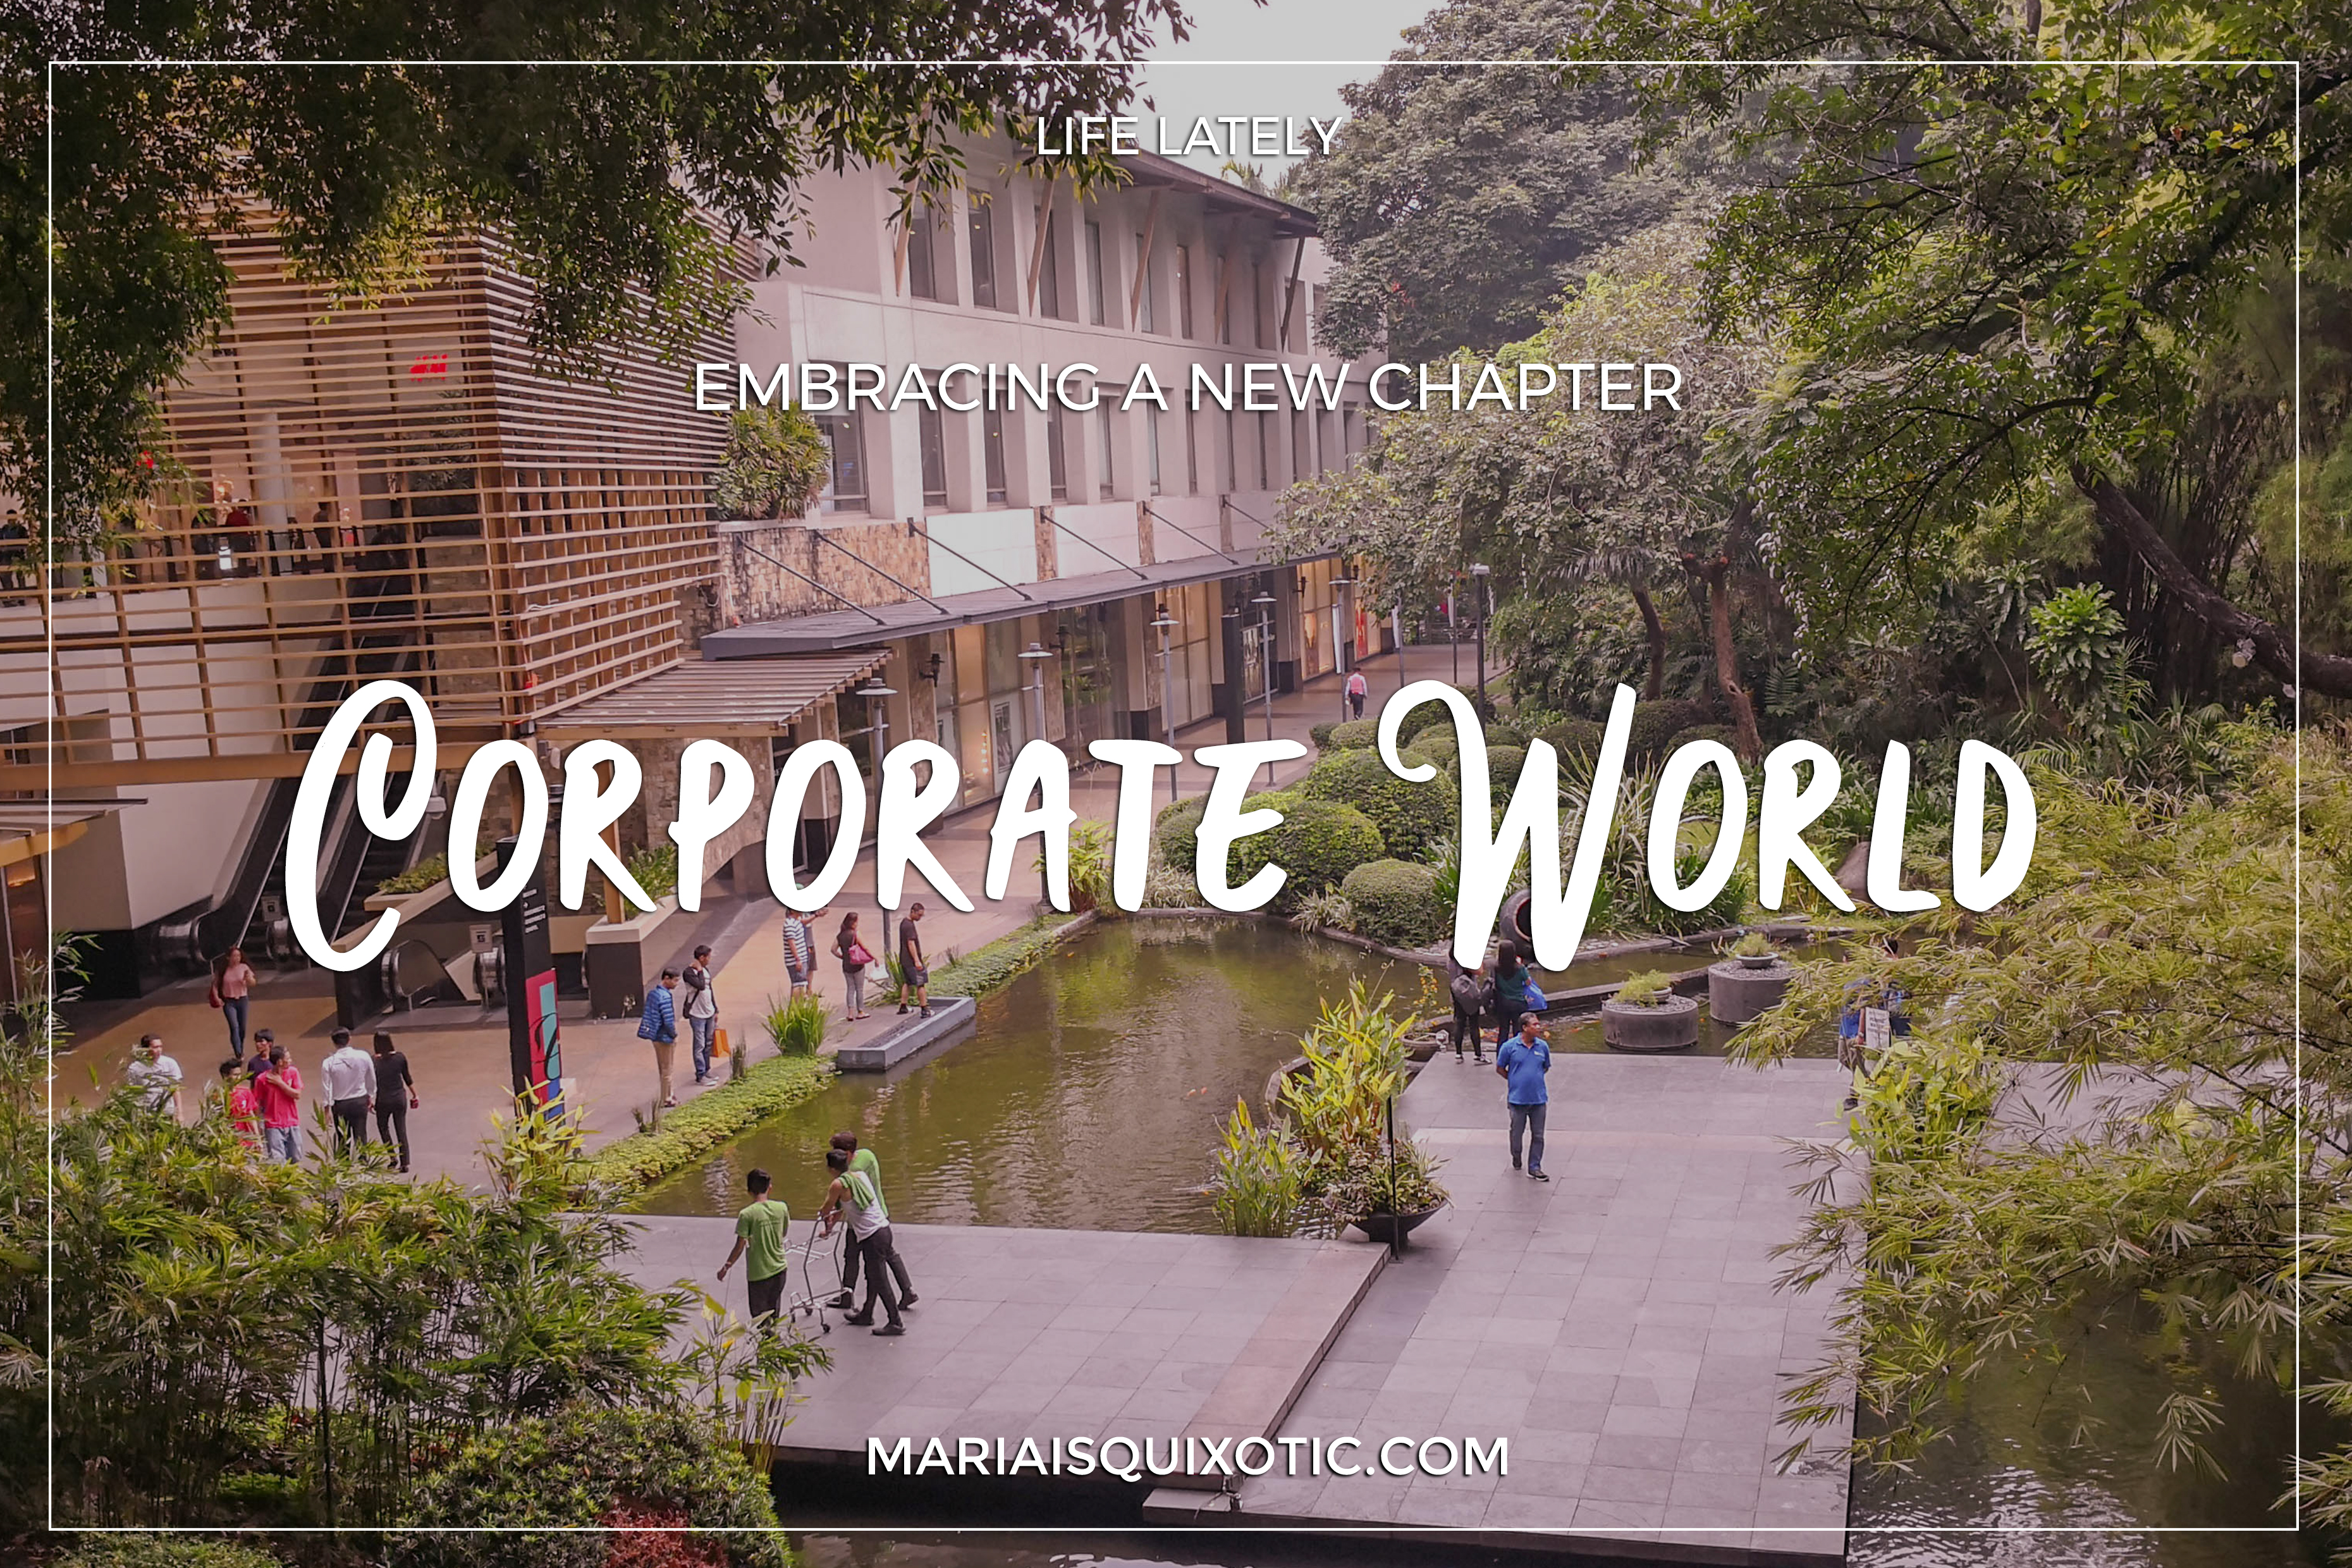 New Chapter: Corporate World